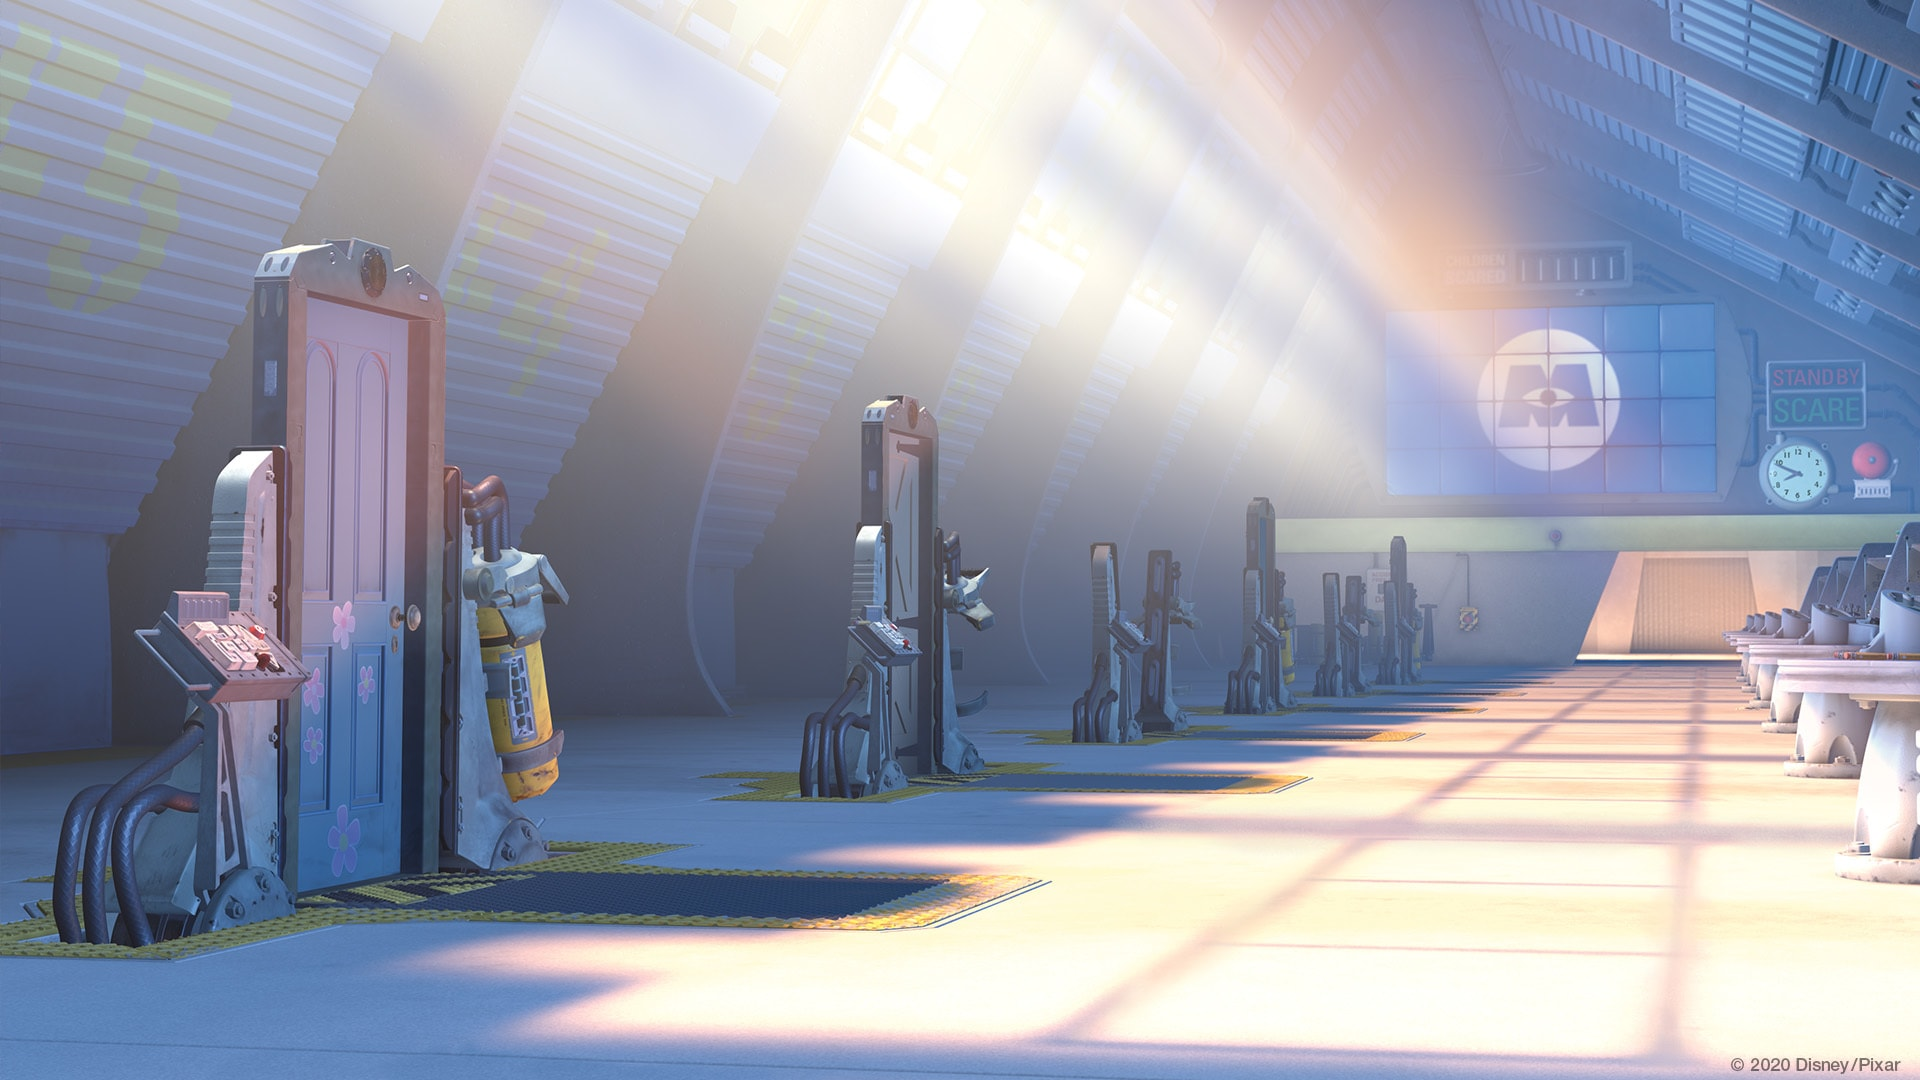 Monsters, Inc video background